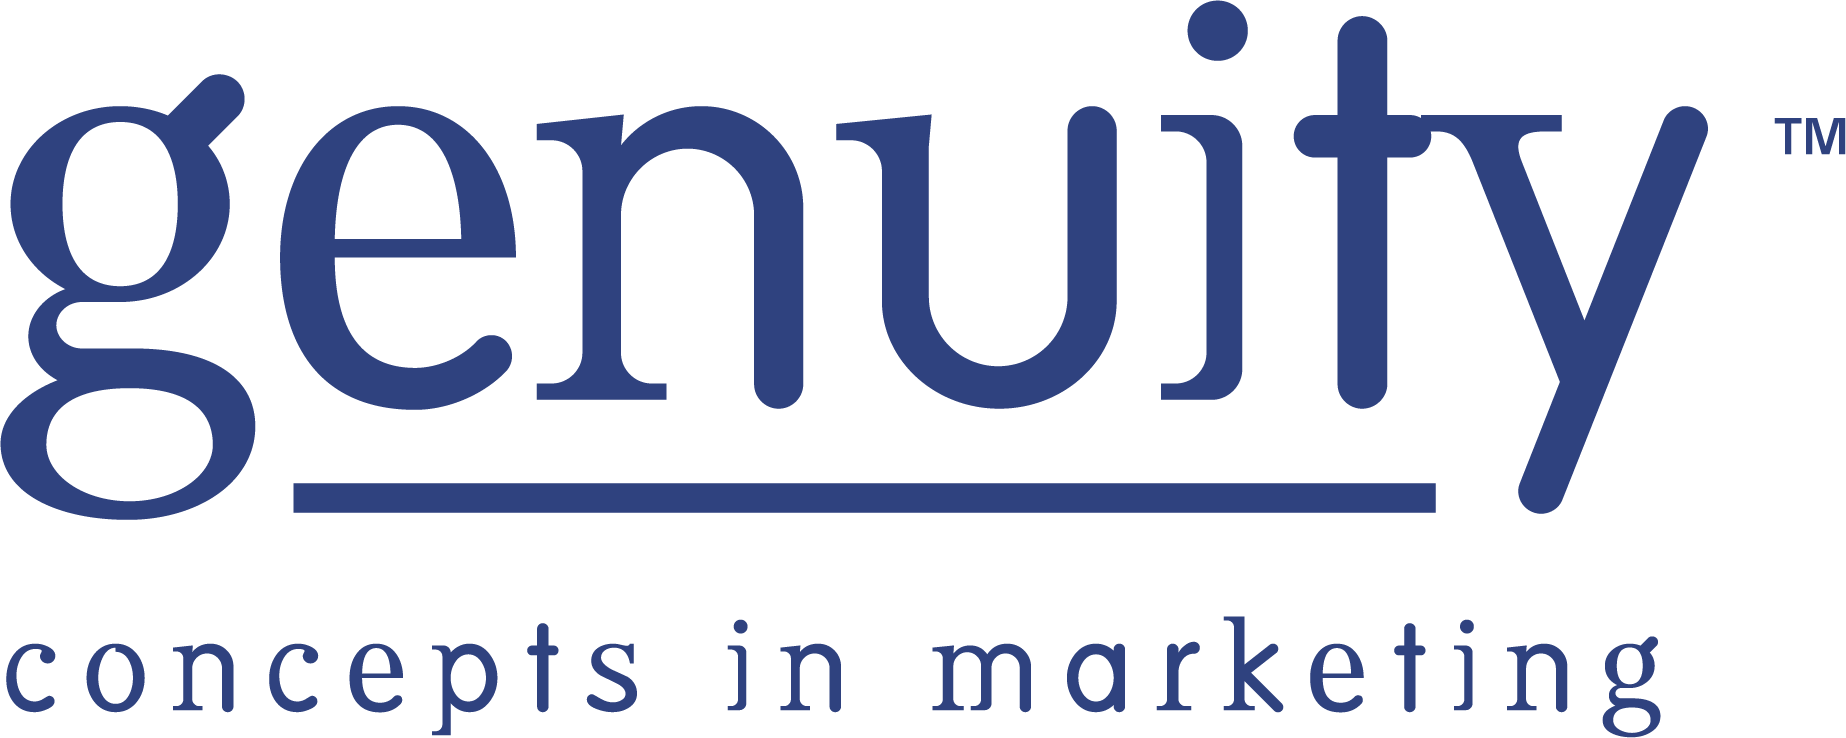 GENUITY Concepts in Marketing 1 Color logo Blue PMS 7867 C.png